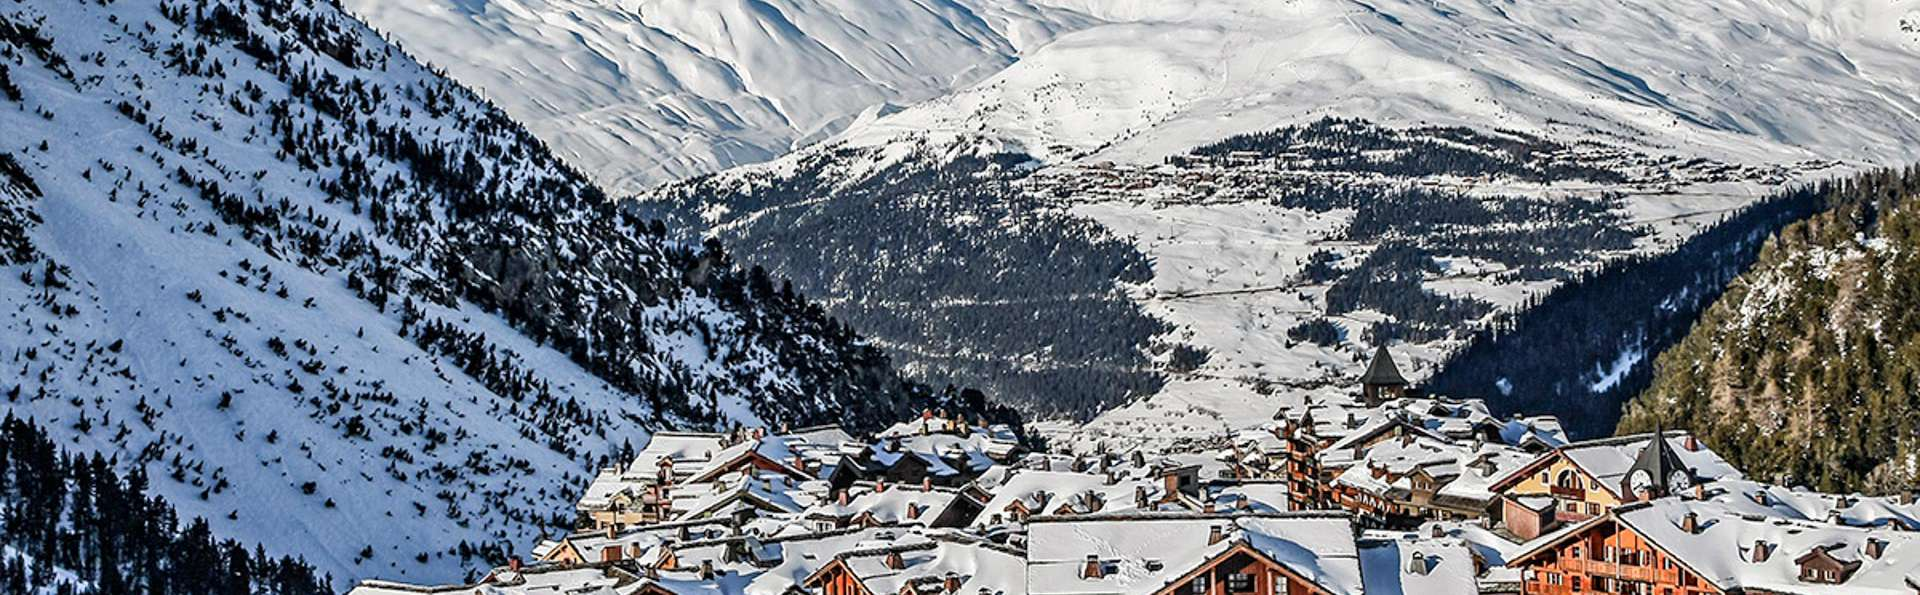 Hotel Base Camp Lodge - EDIT_AERIAL_02.jpg